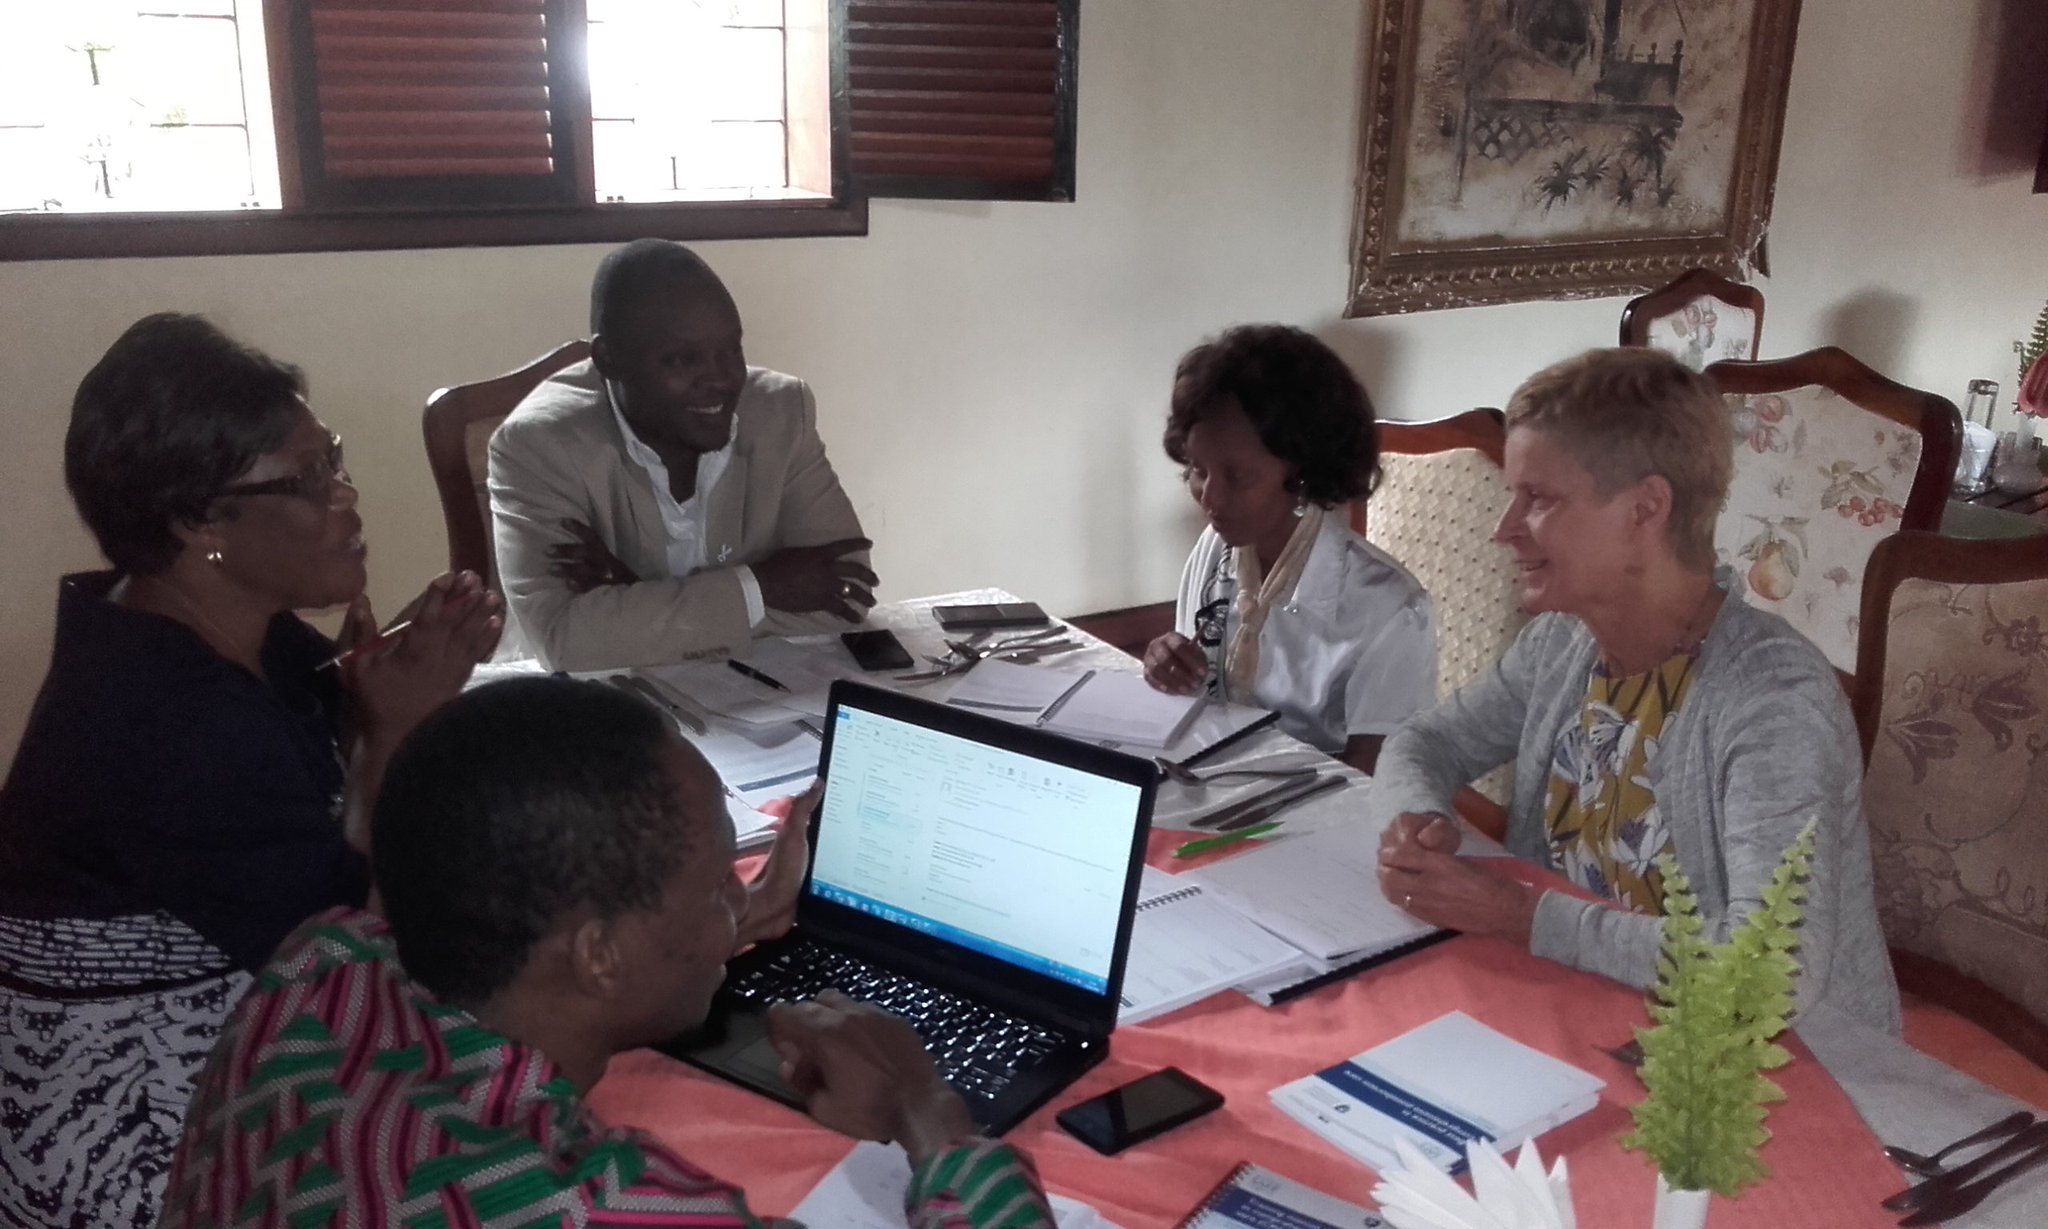 Meeting @RCObsGyn #LeadingSafeChoices and Tanzania Ministry of Health to discuss in-service mentoring for trainees. https://t.co/Y2oLhErYgI